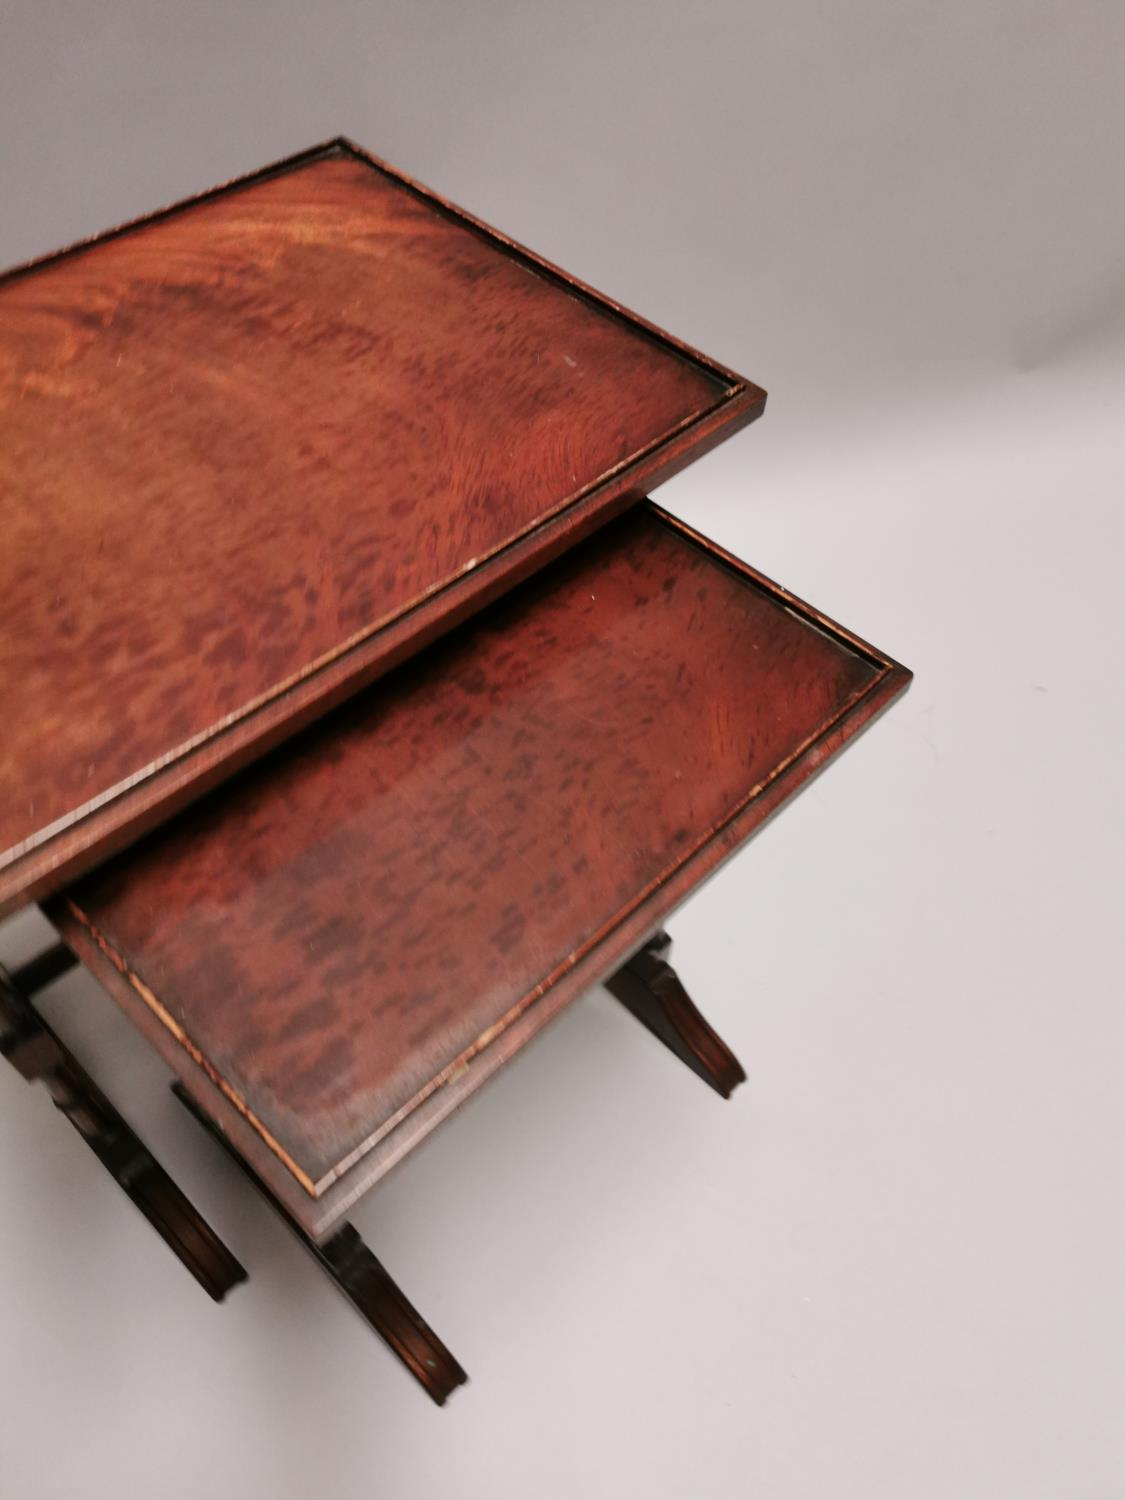 Nest of two mahogany tables - Image 3 of 5